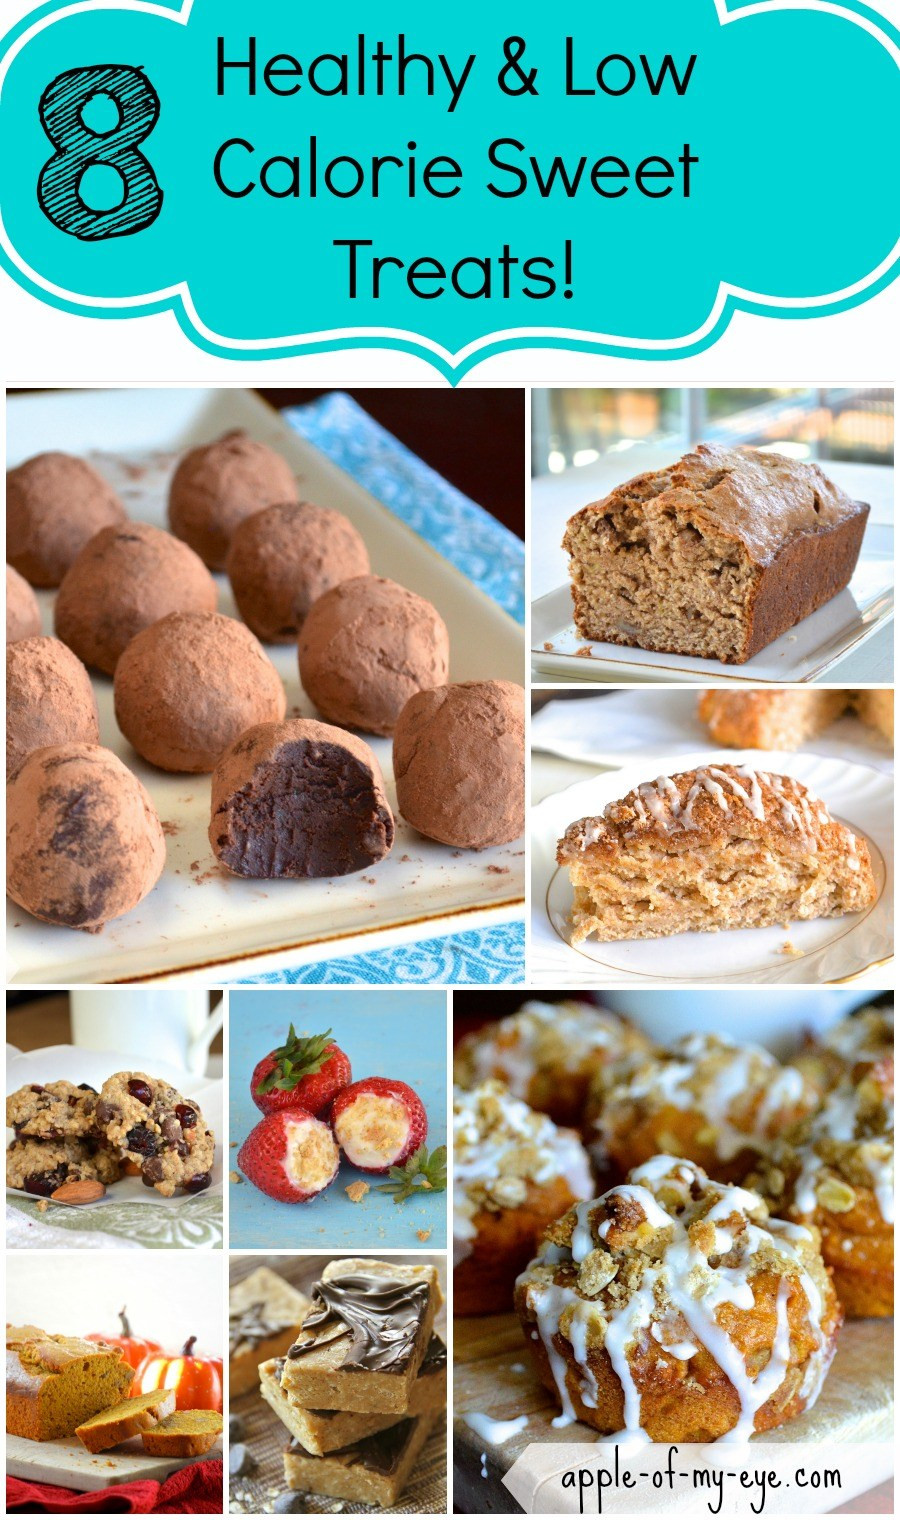 Healthy Low Fat Desserts  Healthy and Low Calorie Desserts